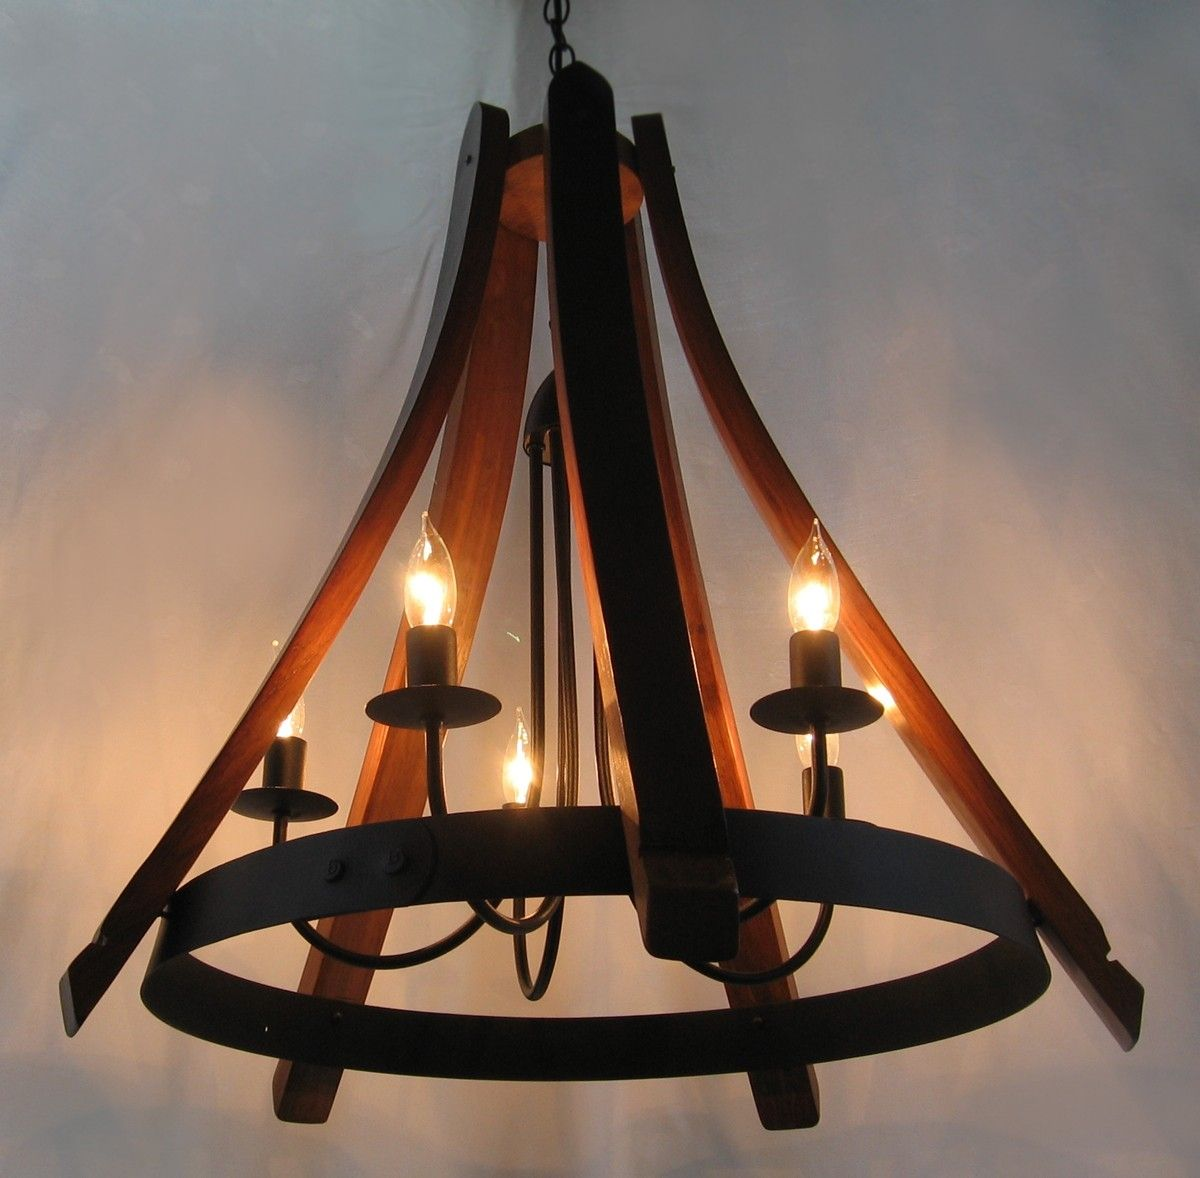 Buy a Hand Made Cervantes, Wine Barrel Chandelier Recycled Oak Staves And Hoop Pendant Ceiling ...